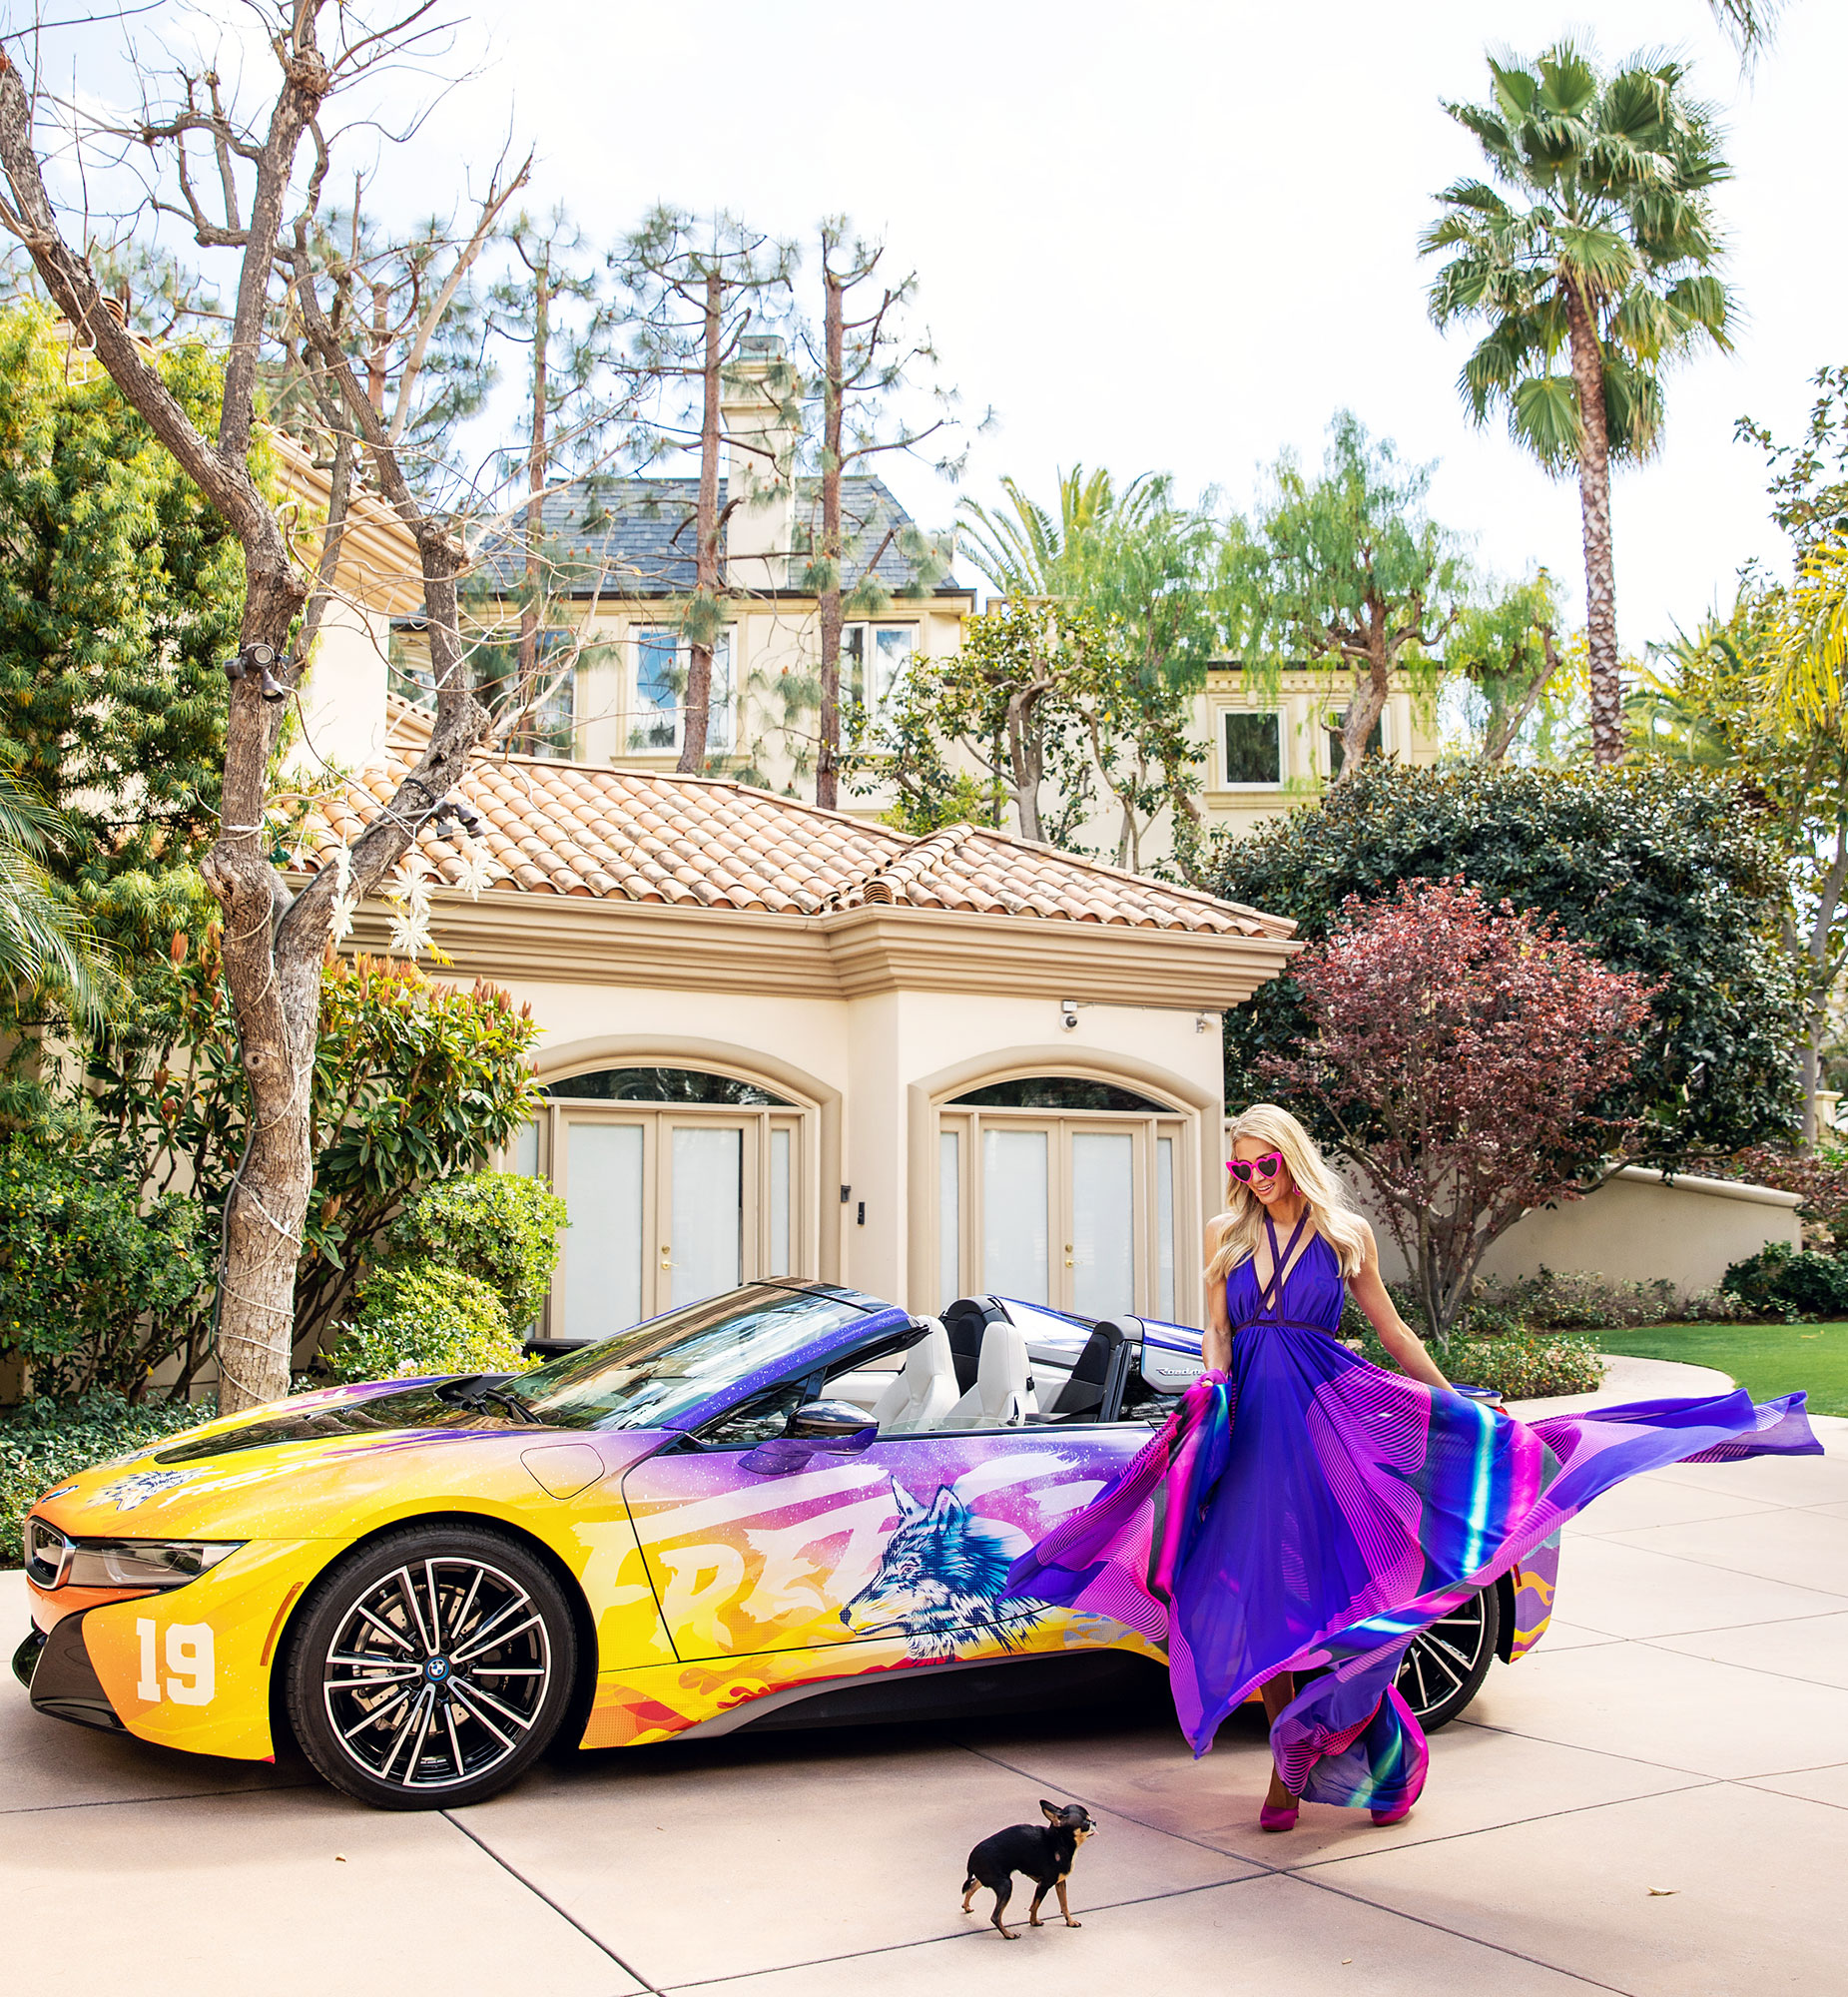 Paris Hilton BMWi8 Coachella - The socialite showed off her fab figure as she color-coordinated with her custom wrapped BMWi8 ride to Coachella, produced by Mirrored Media.